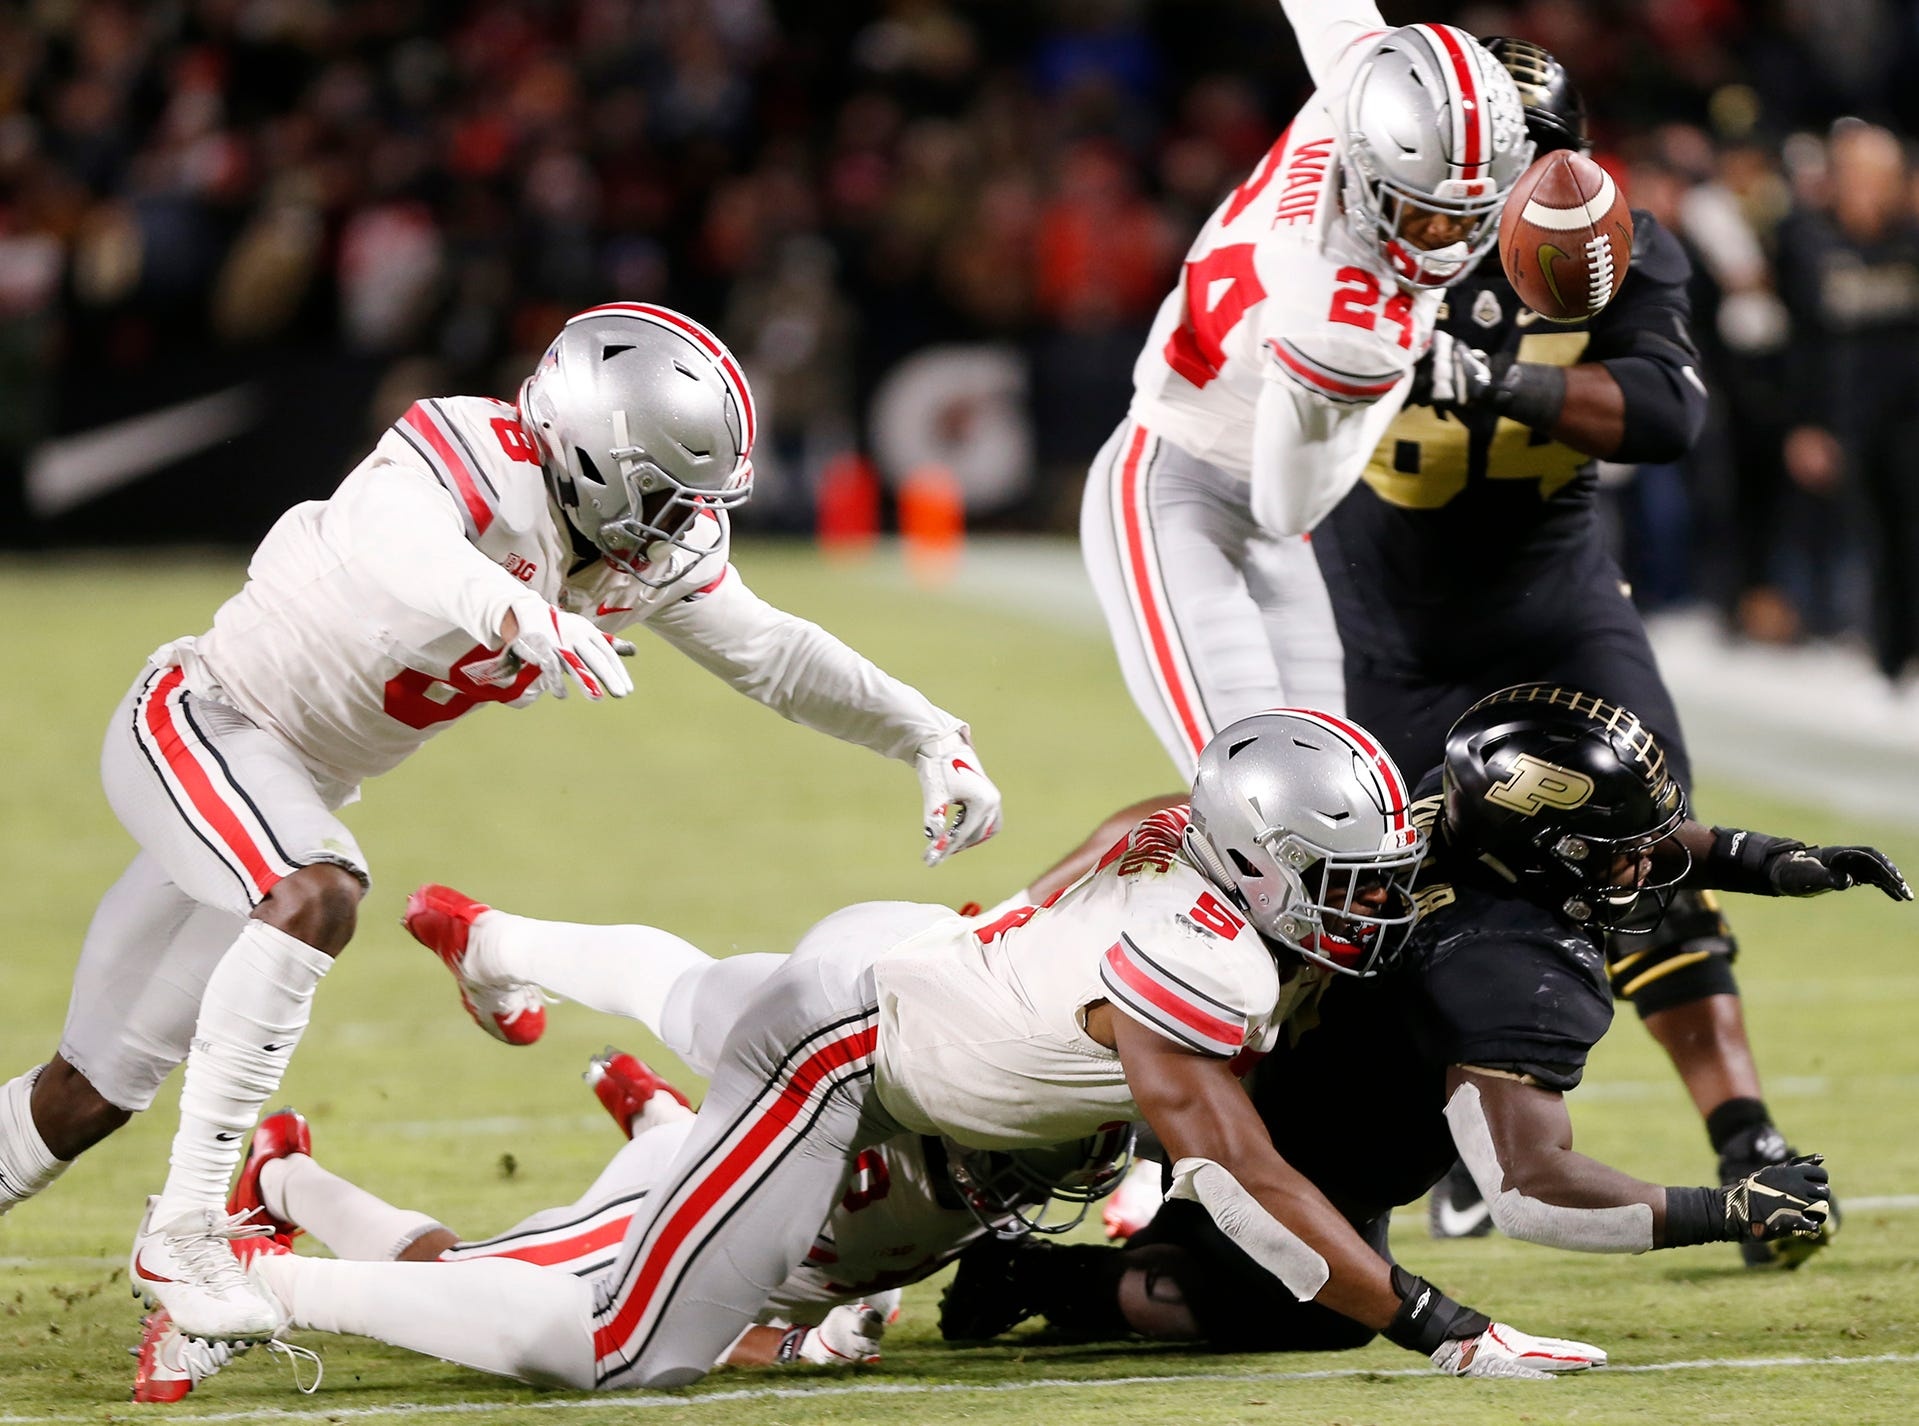 The ball pops out of the hands of D. J. Knox of Purdue as he is hit by Baron Browning of Ohio State Saturday, October 20, 2018, at Ross-Ade Stadium. Purdue maintained possession of the ball. Purdue upset No. 2 ranked Ohio State 49-20.